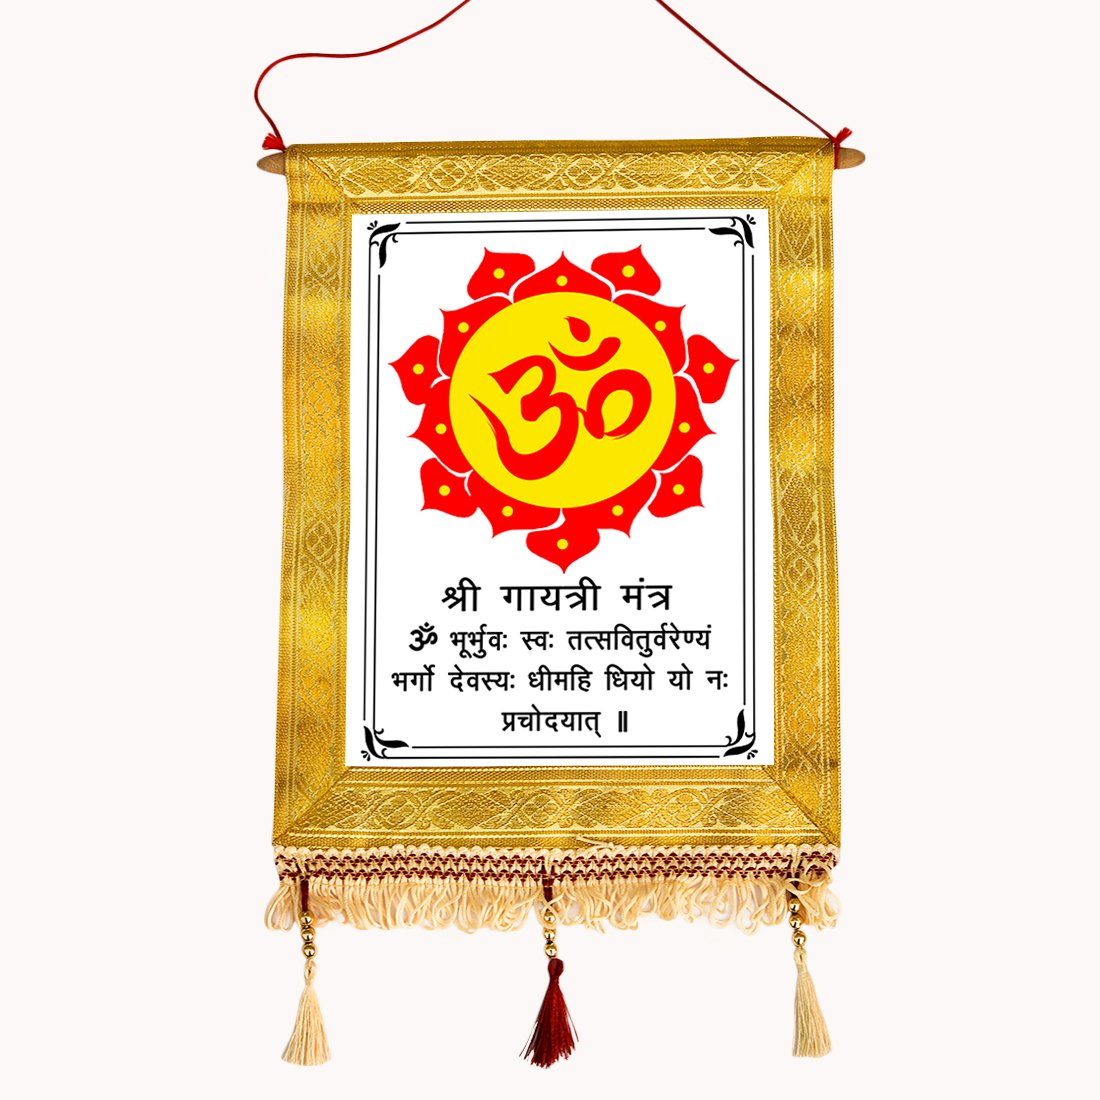 Buy huppme diwali gayatri mantra wall hanging online at low prices in india amazon in